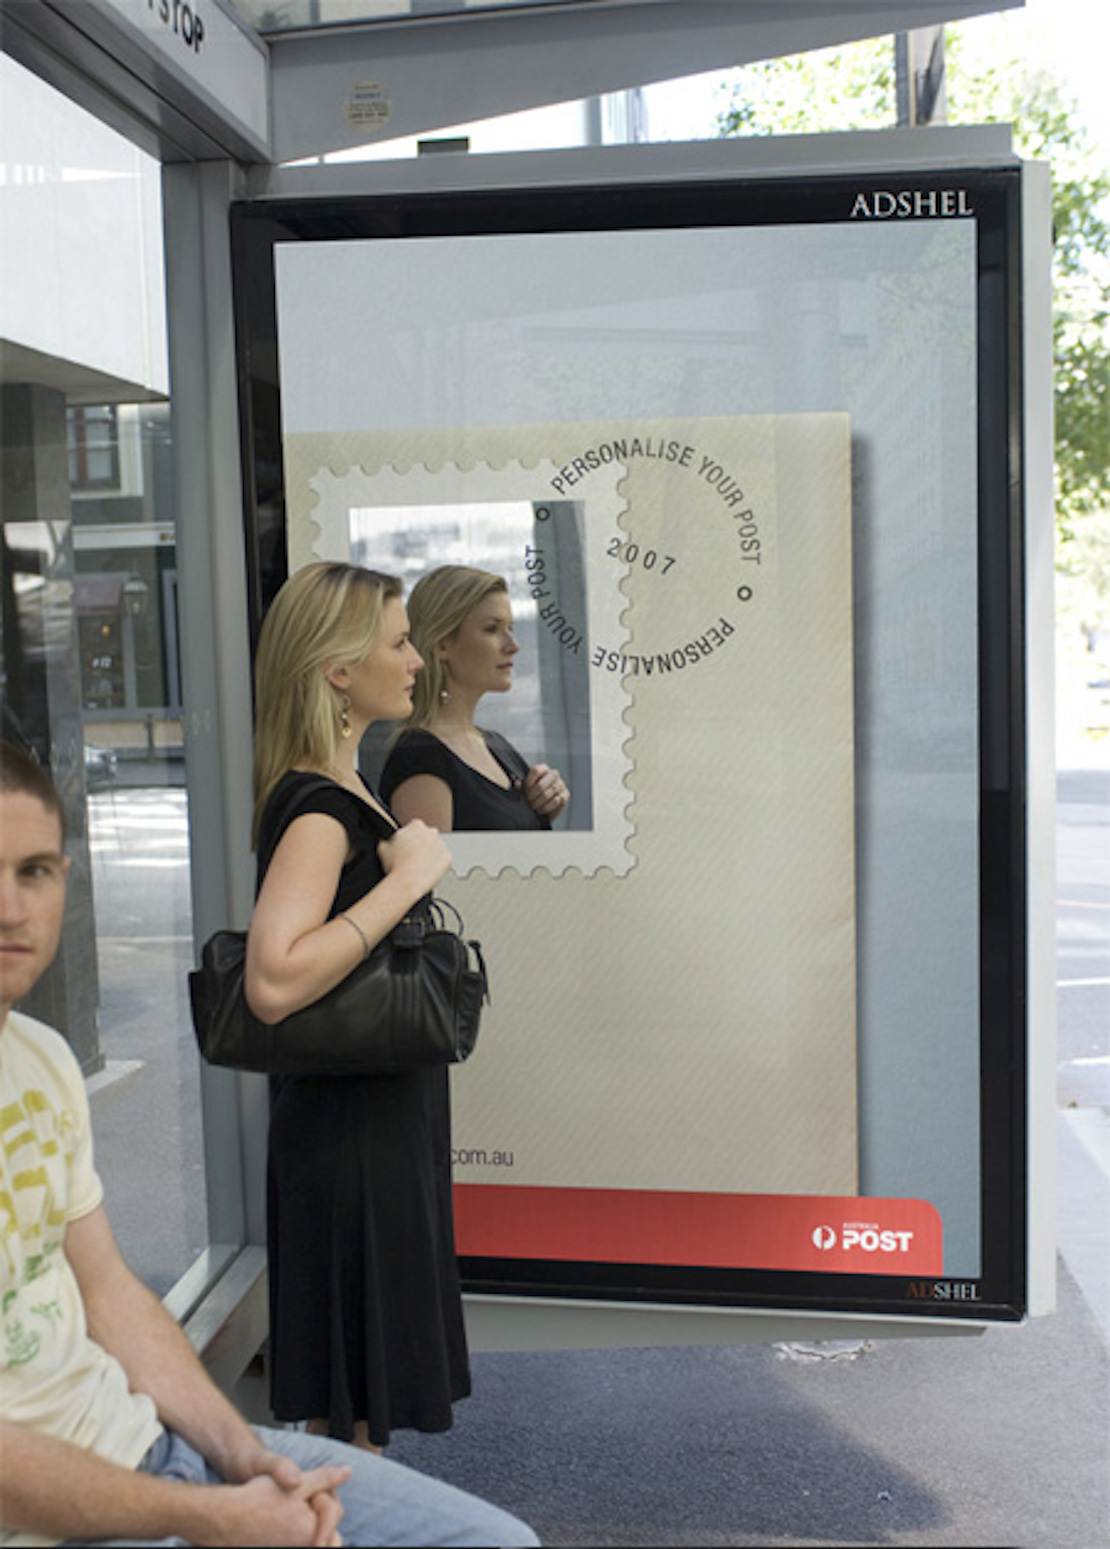 48 Fresh And Creative Bus Stop Advertisements That Will Blow Your Mind 27